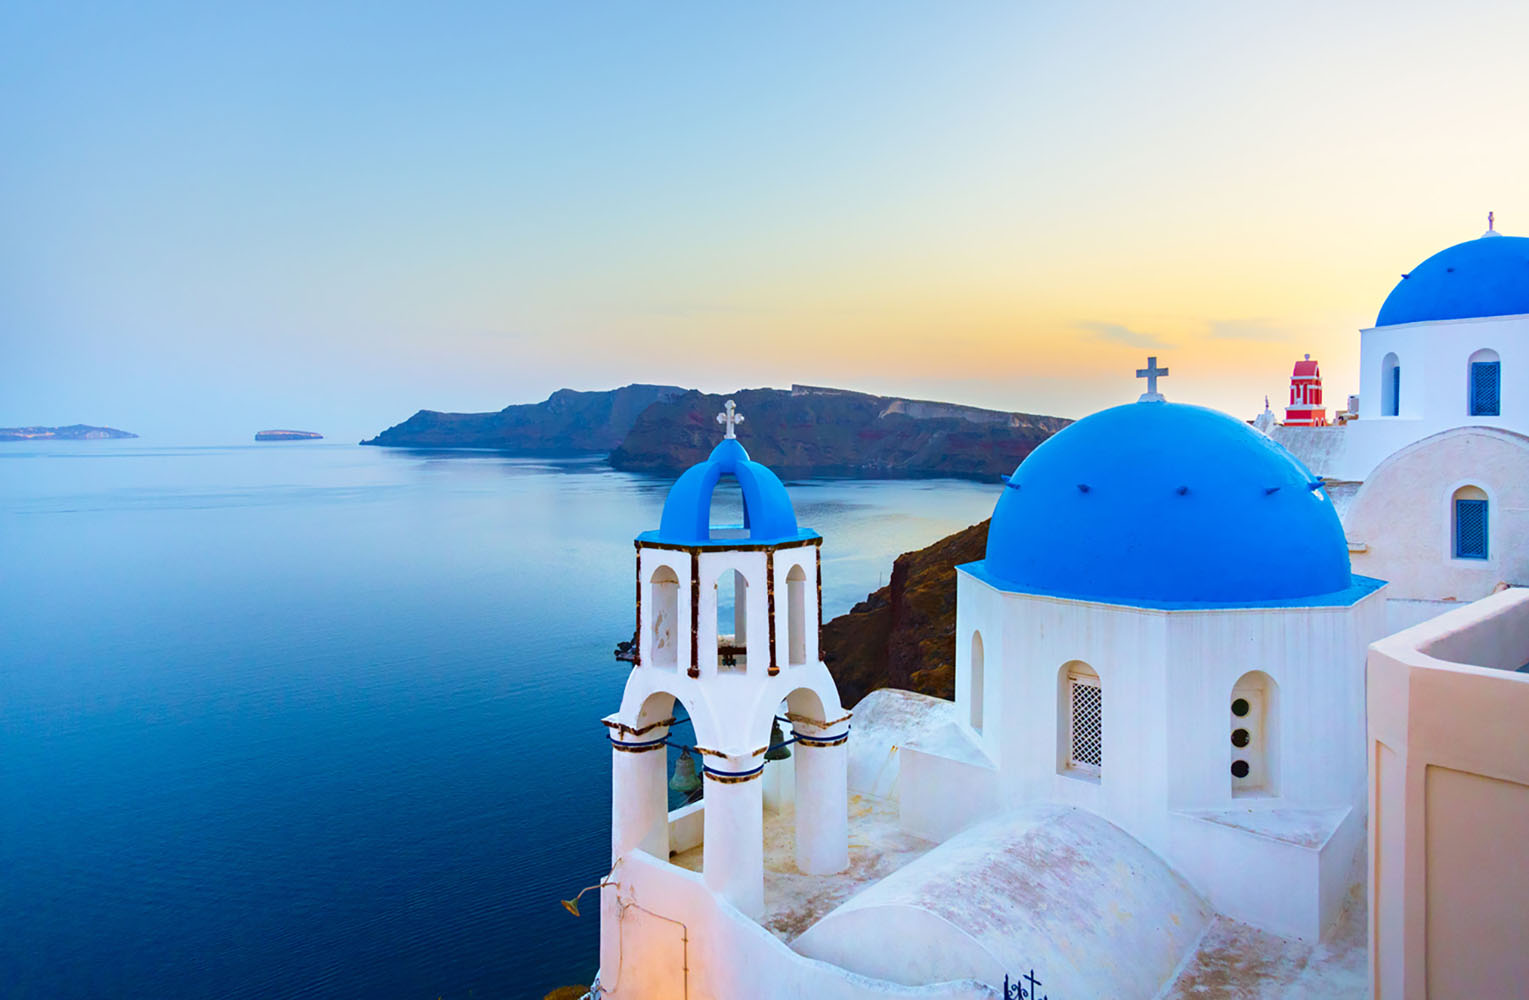 Five Countries We Can't Wait to Visit in 2022 - Mediterranean Edition